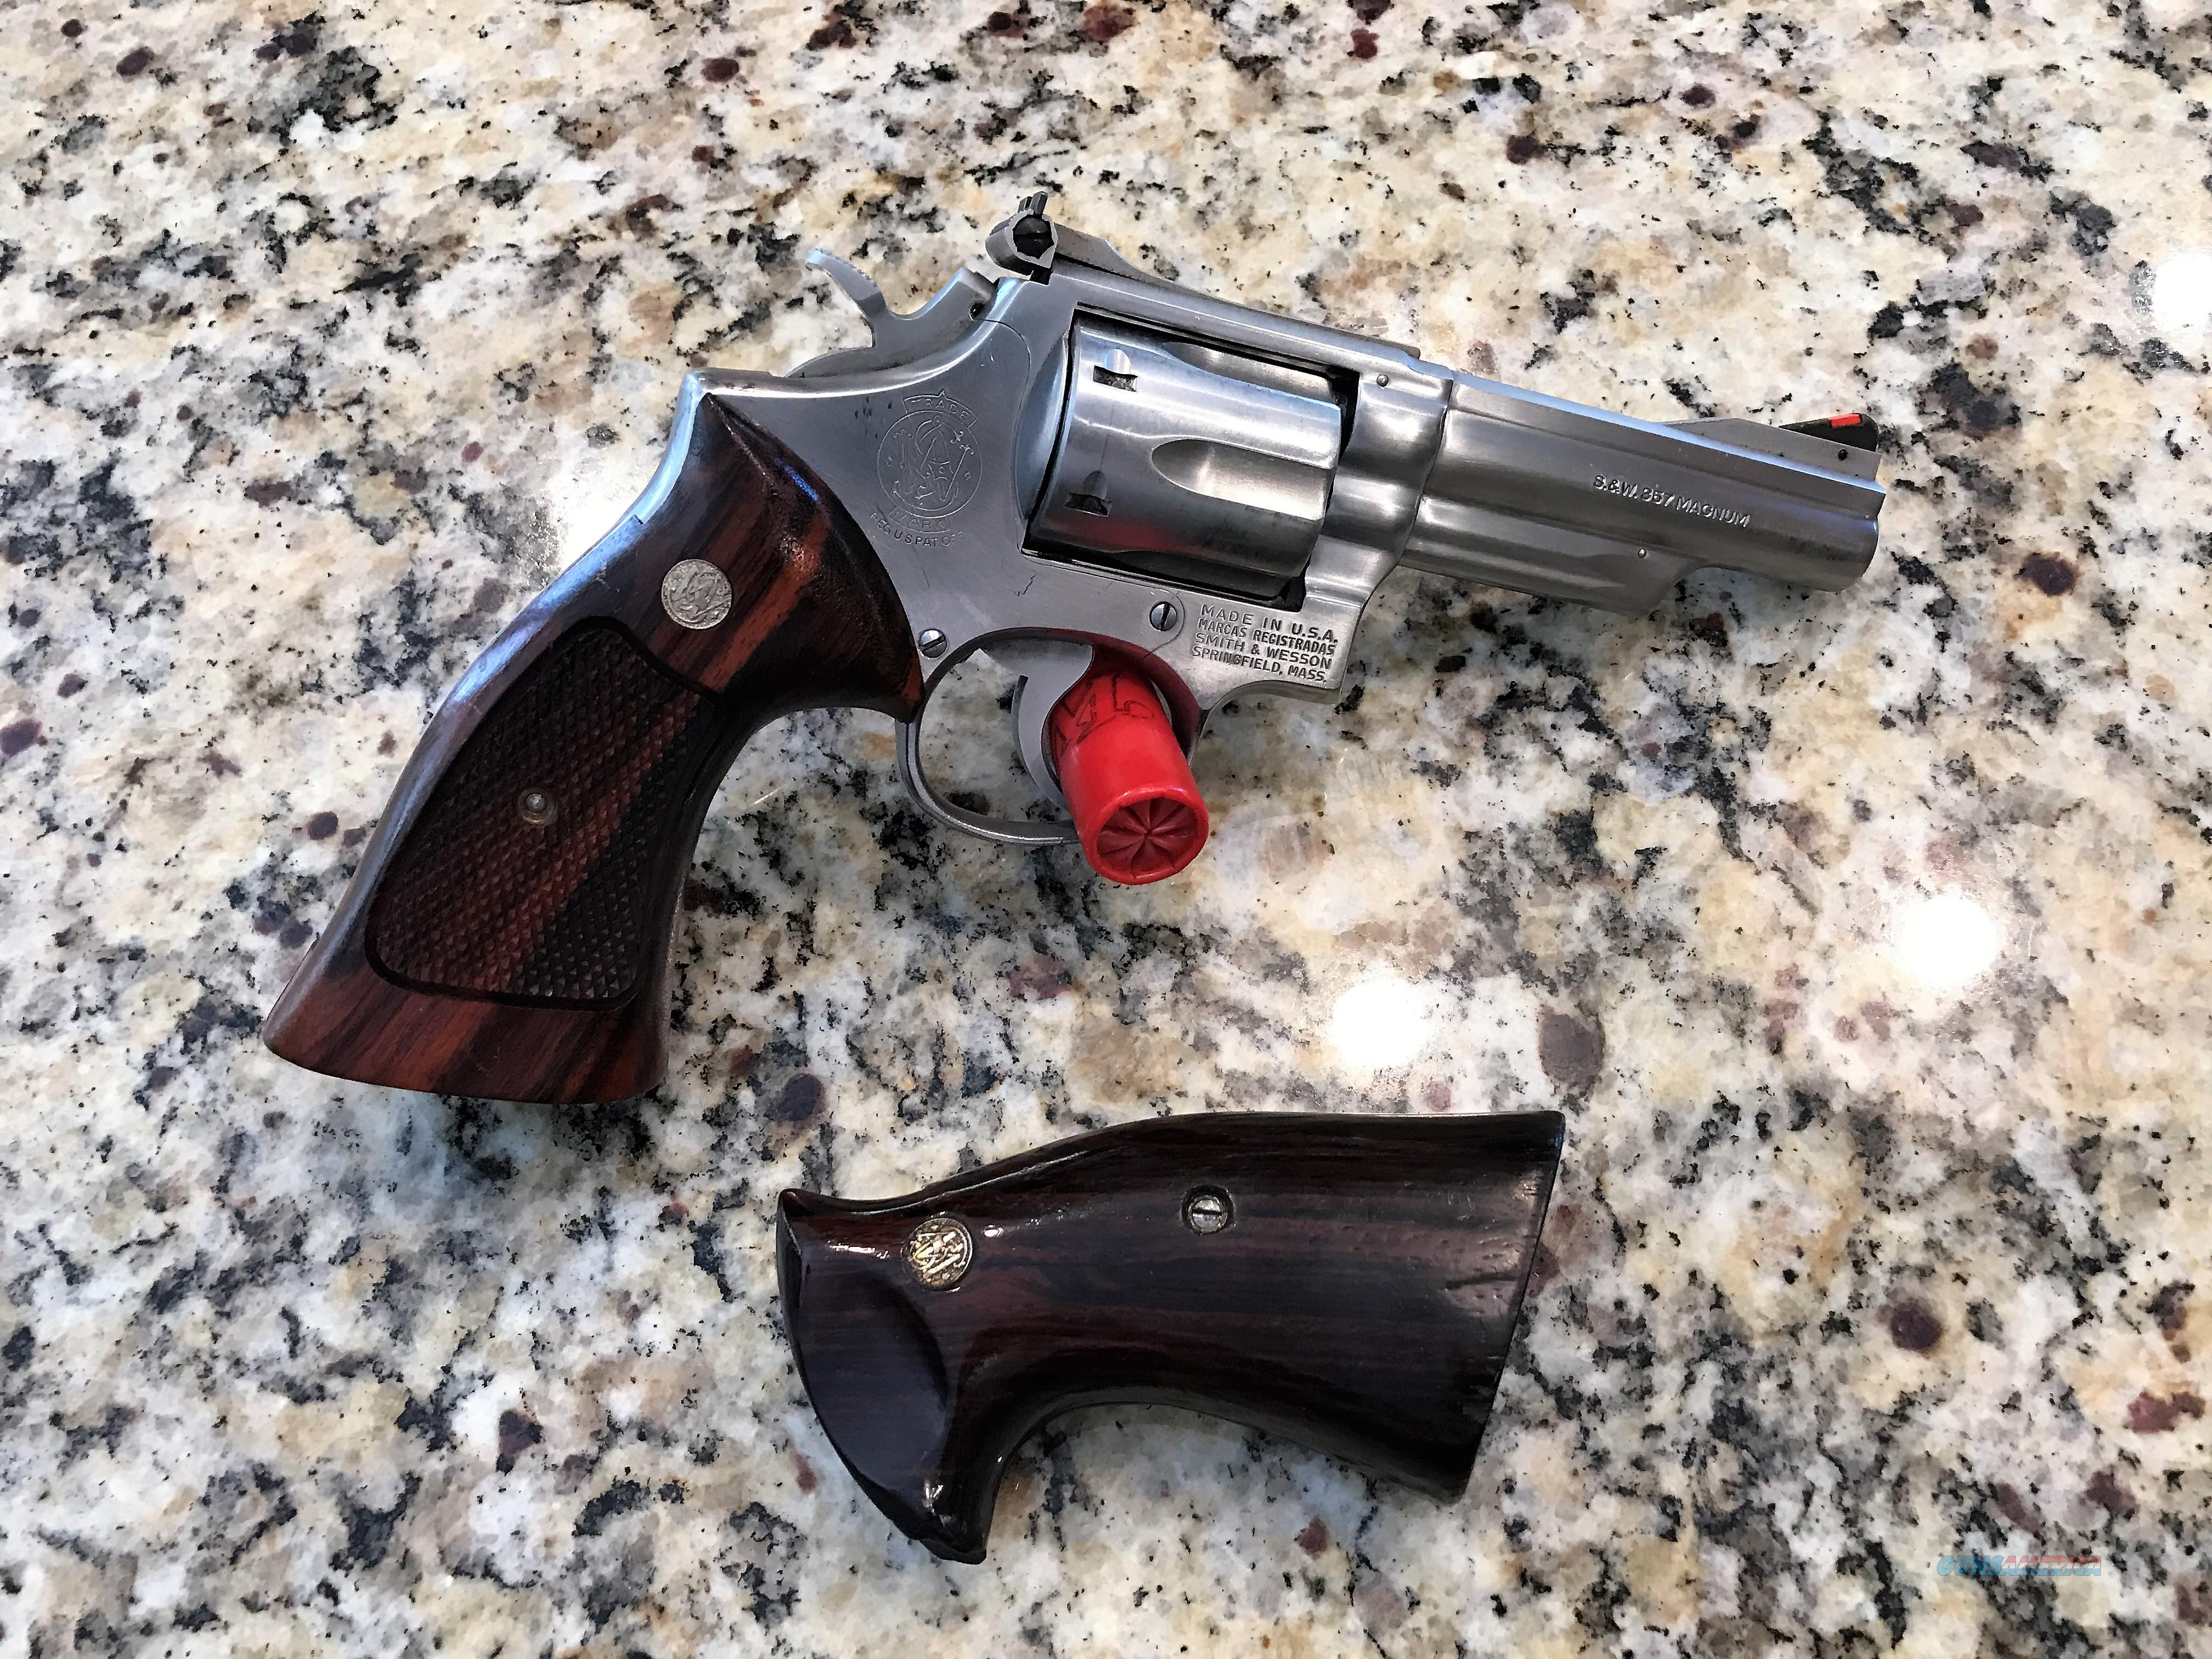 S&W MODEL 66 NO DASH, 4 IN, STAINLESS, 357 MAG, 2 SET FACT GRIPS, MFG 1973, COLLECTOR REVOLVER  Guns > Pistols > Smith & Wesson Revolvers > Med. Frame ( K/L )